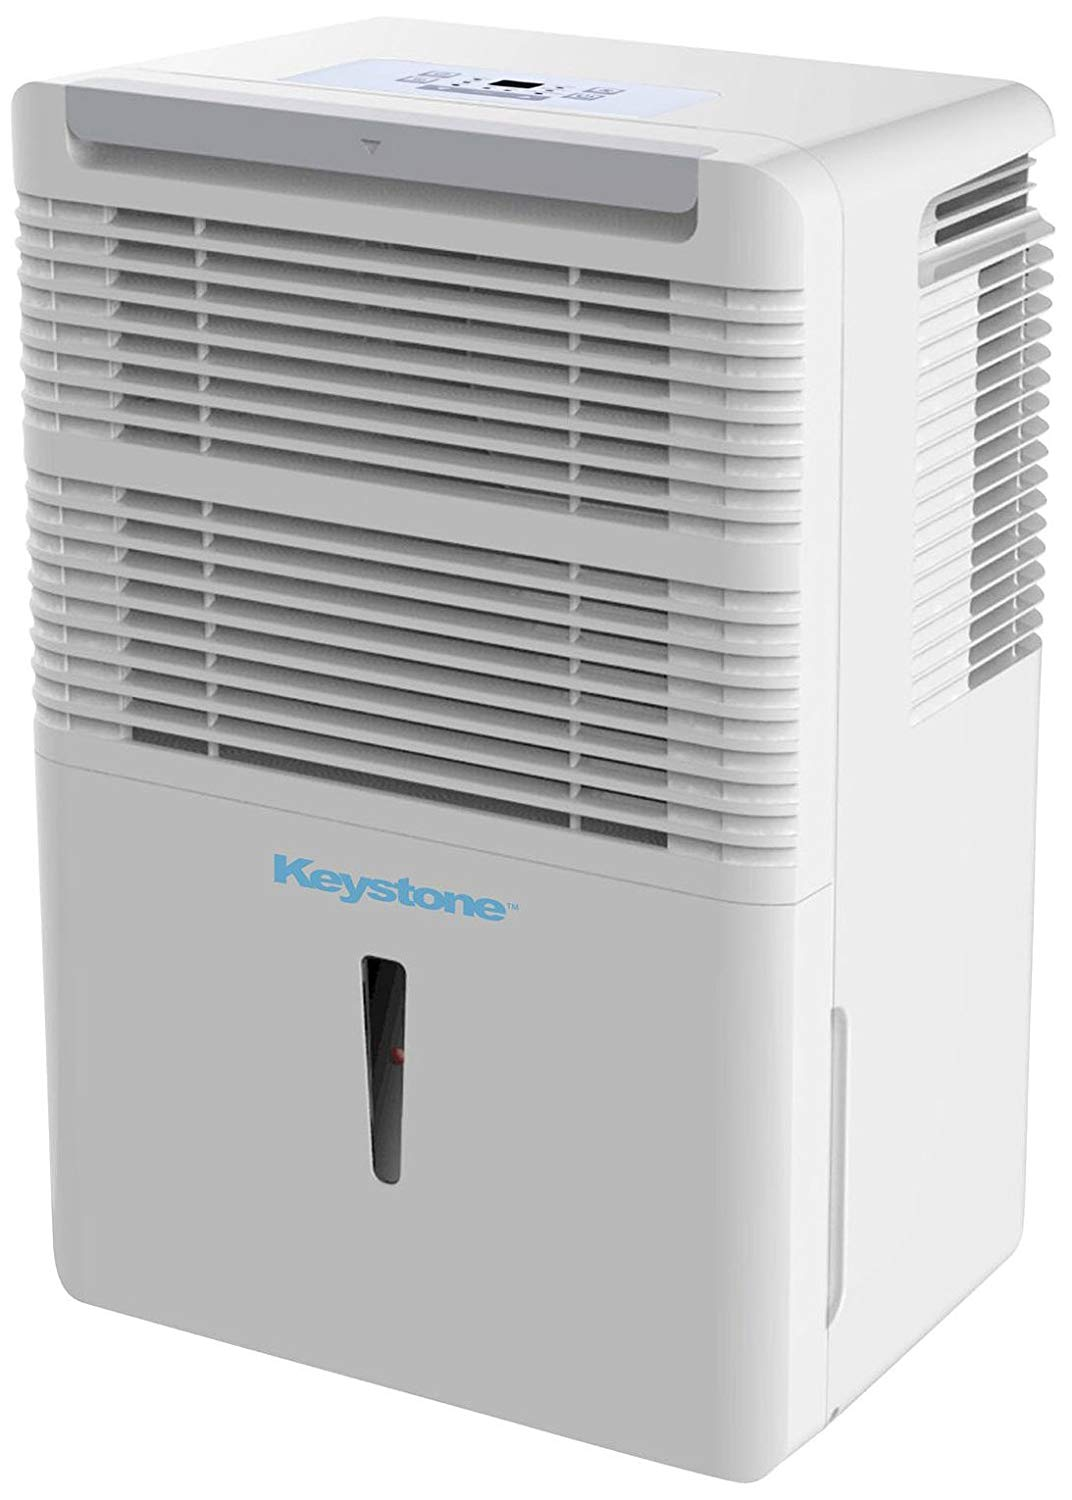 The Best Dehumidifiers Keep You Healthy and Your Home Clean 3